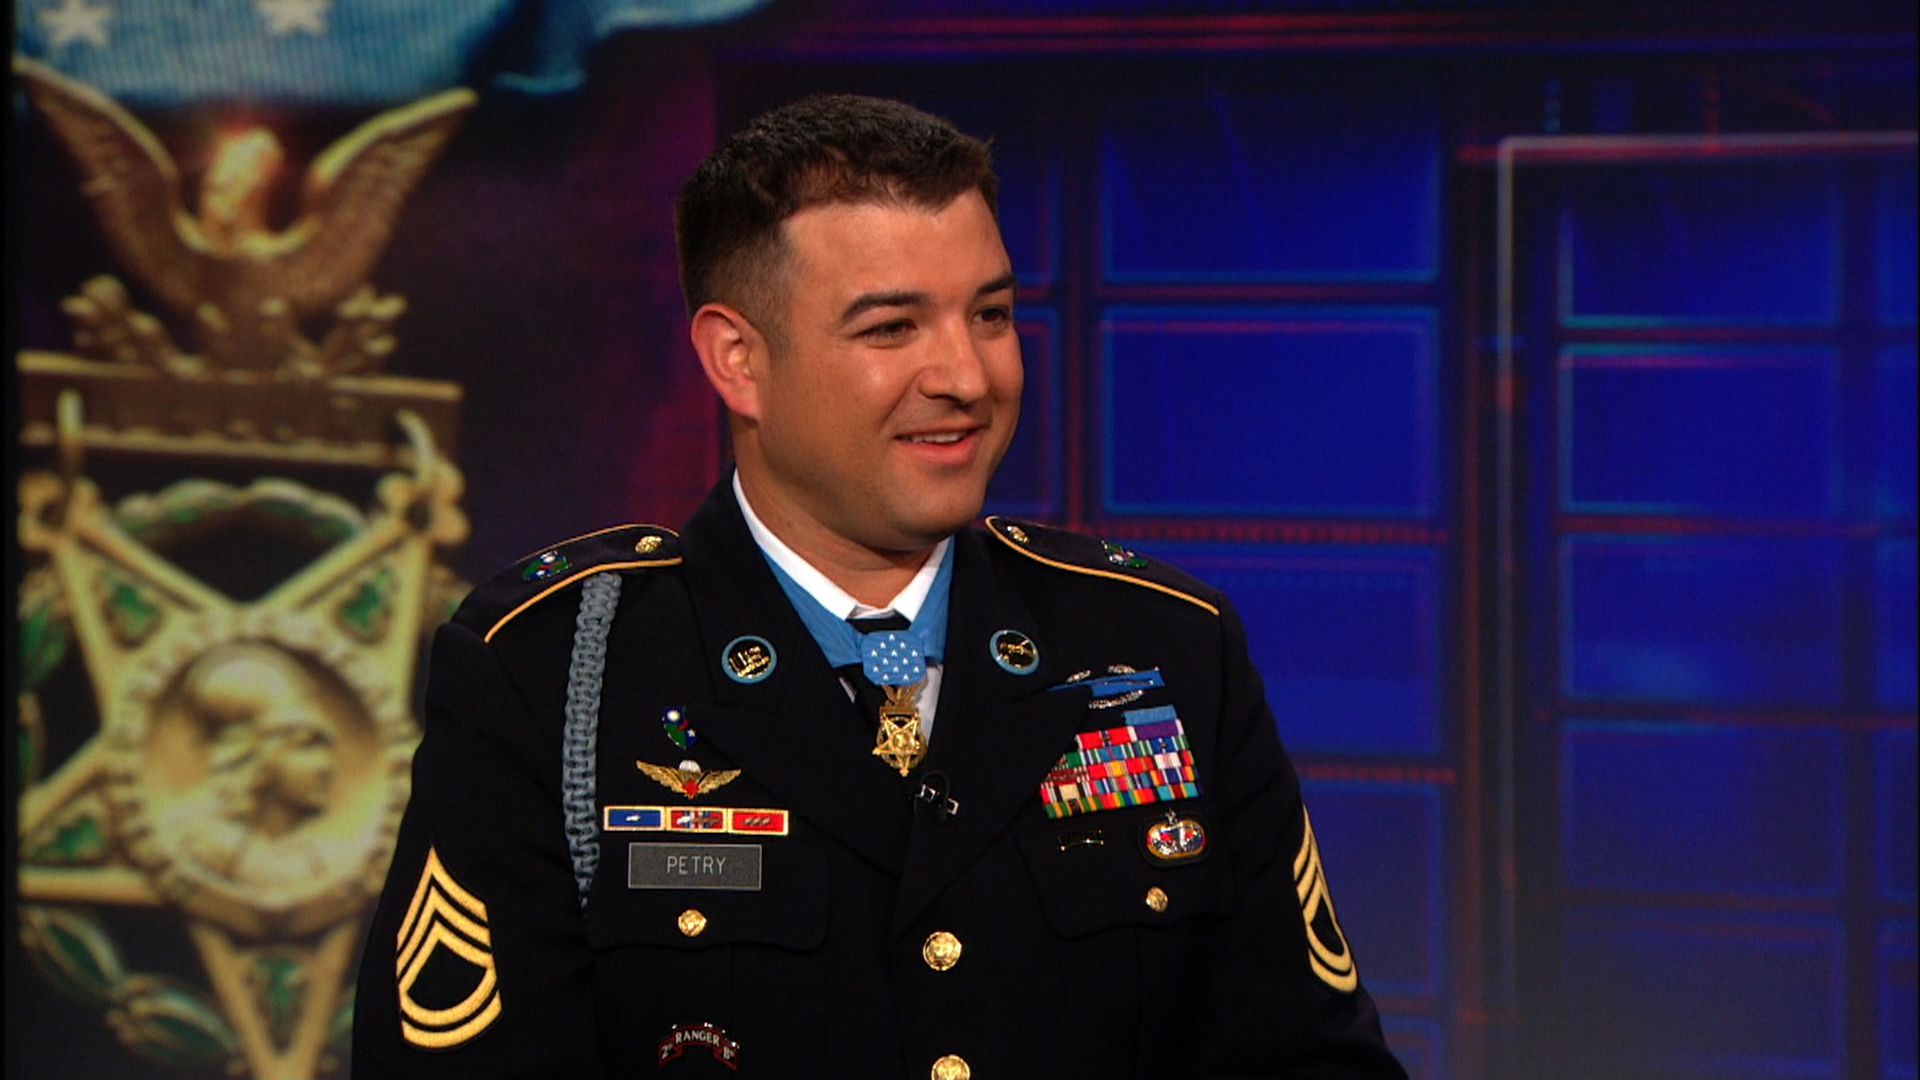 Leroy Petry | BahVideo.com